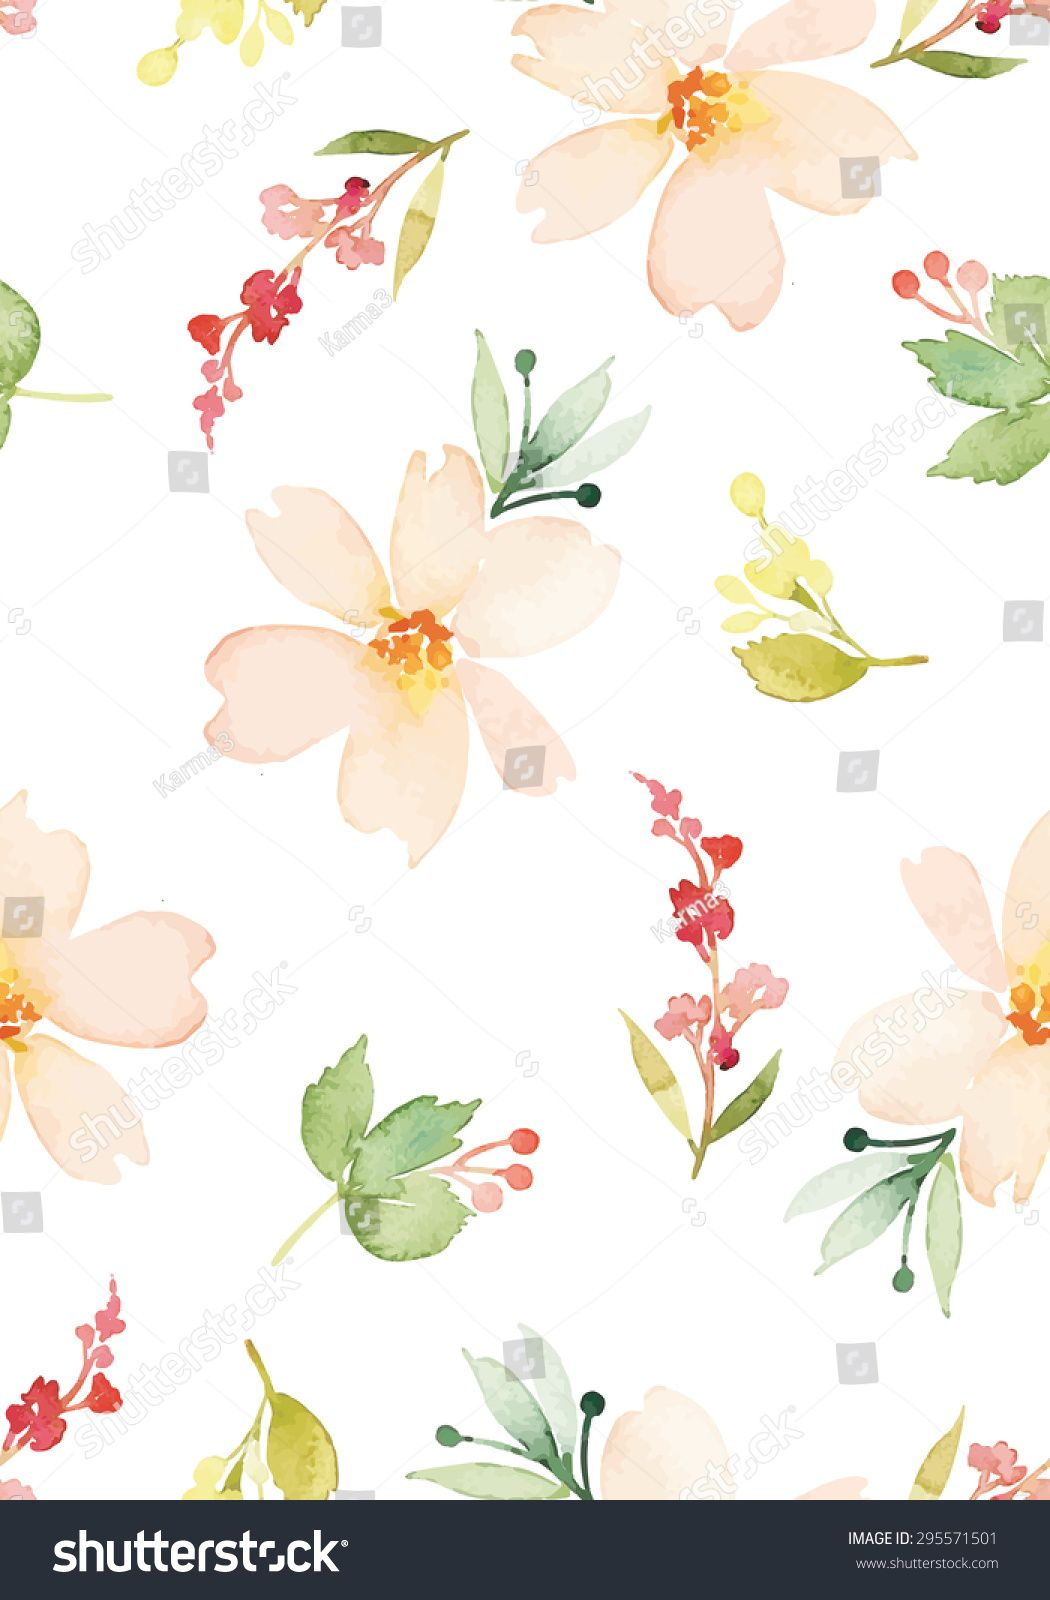 Watercolor Flowers Seamless Pattern Vector Illustration Gentle